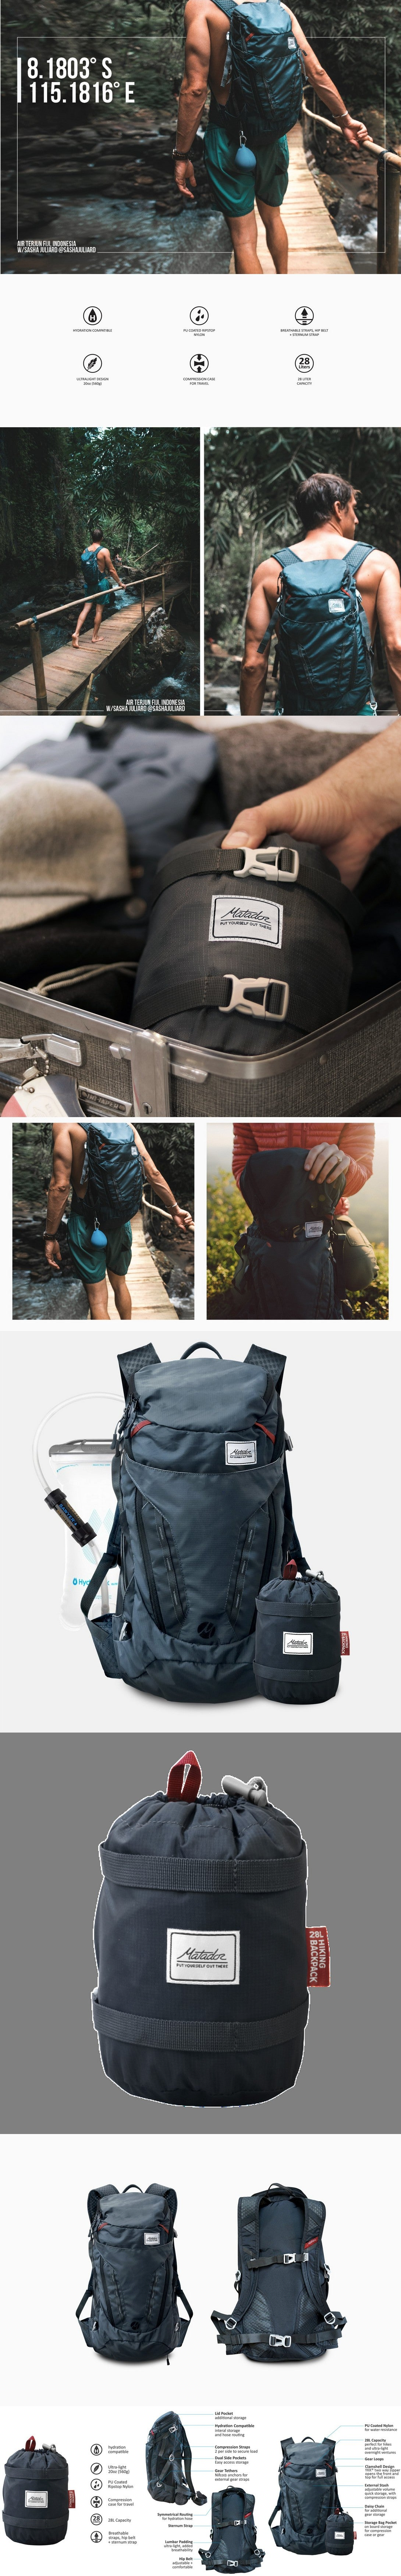 MATADOR - Beast Packable Backpack 28L 摺疊防水多功能背包